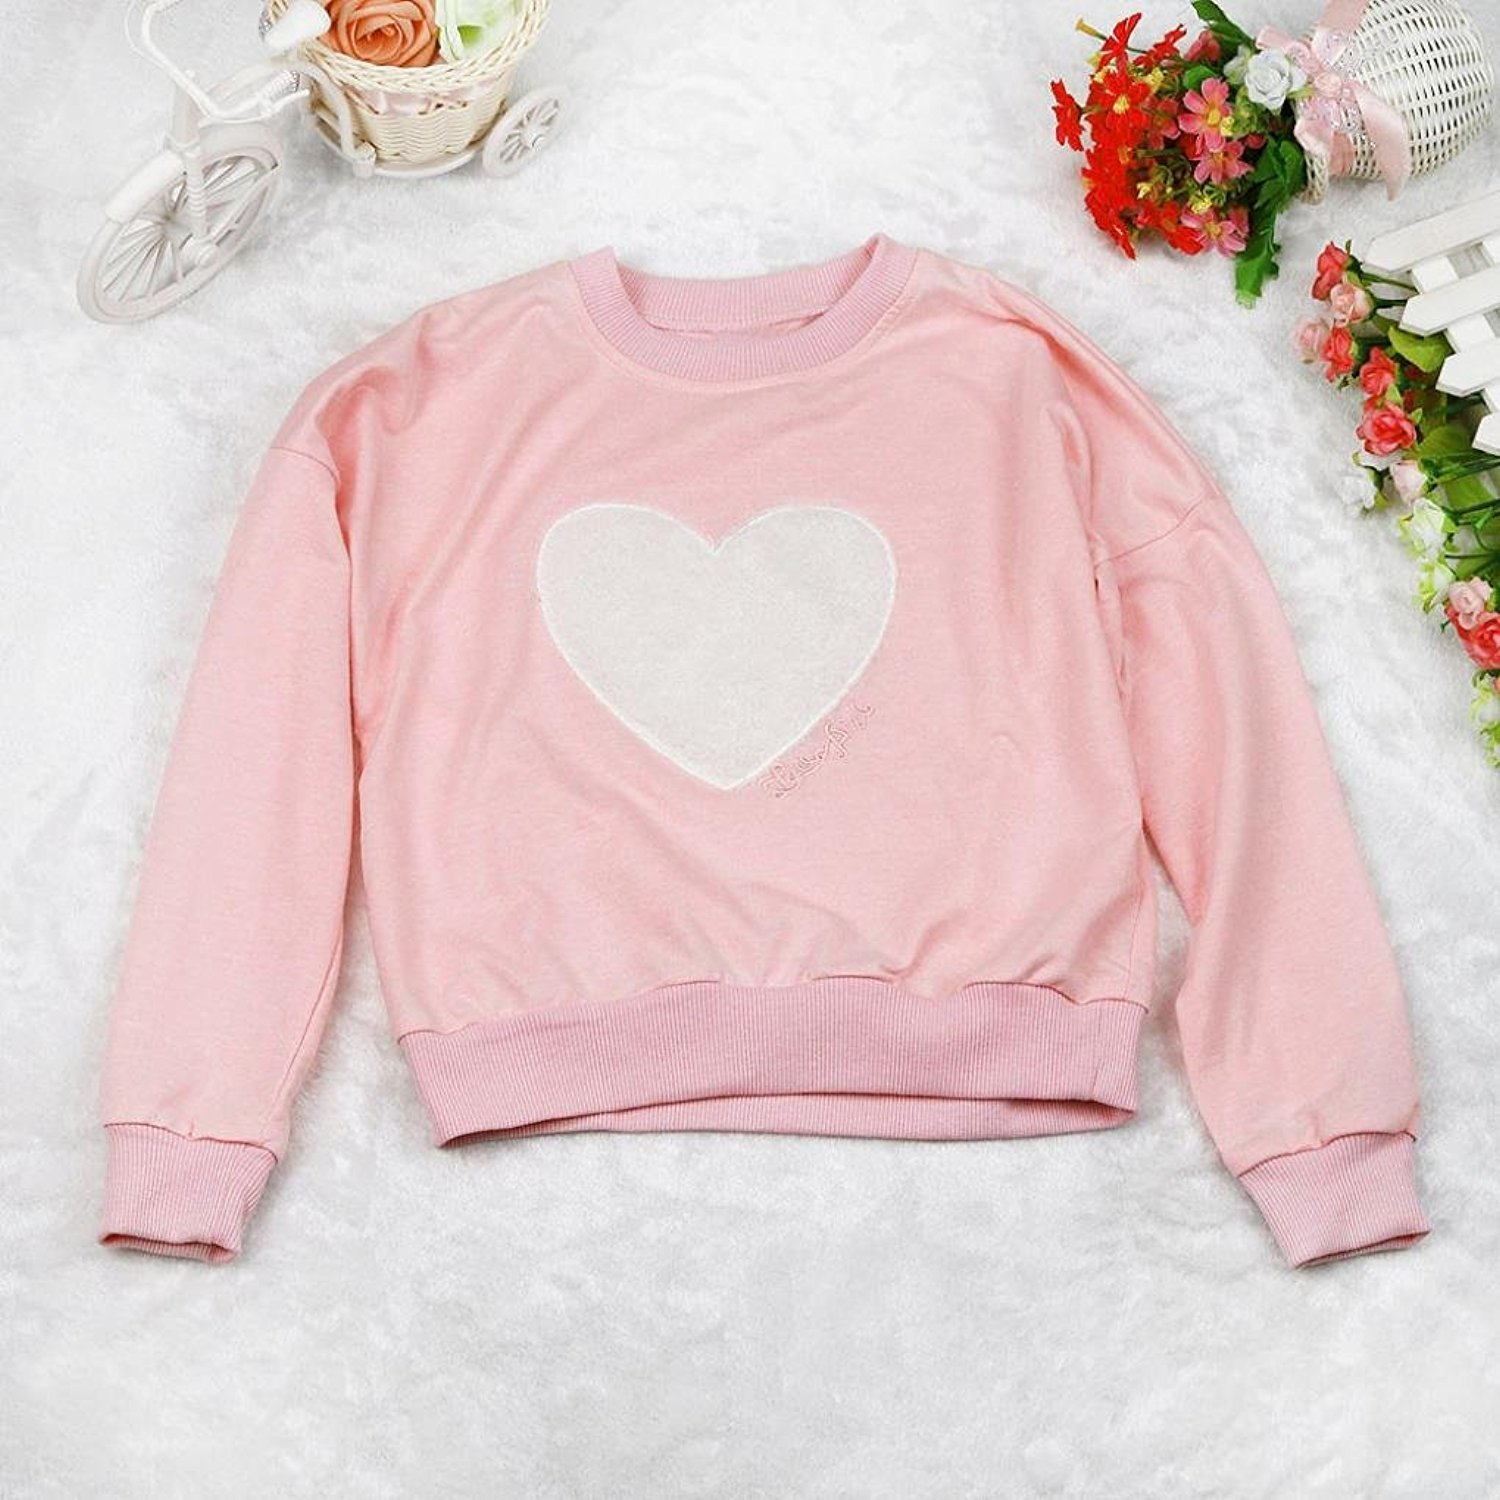 5-6T, Pink Webla Kids Girls Tracksuit Long Sleeve Heart Print Sweatshirt+Pants Outfits Set Ages 2-7 Years